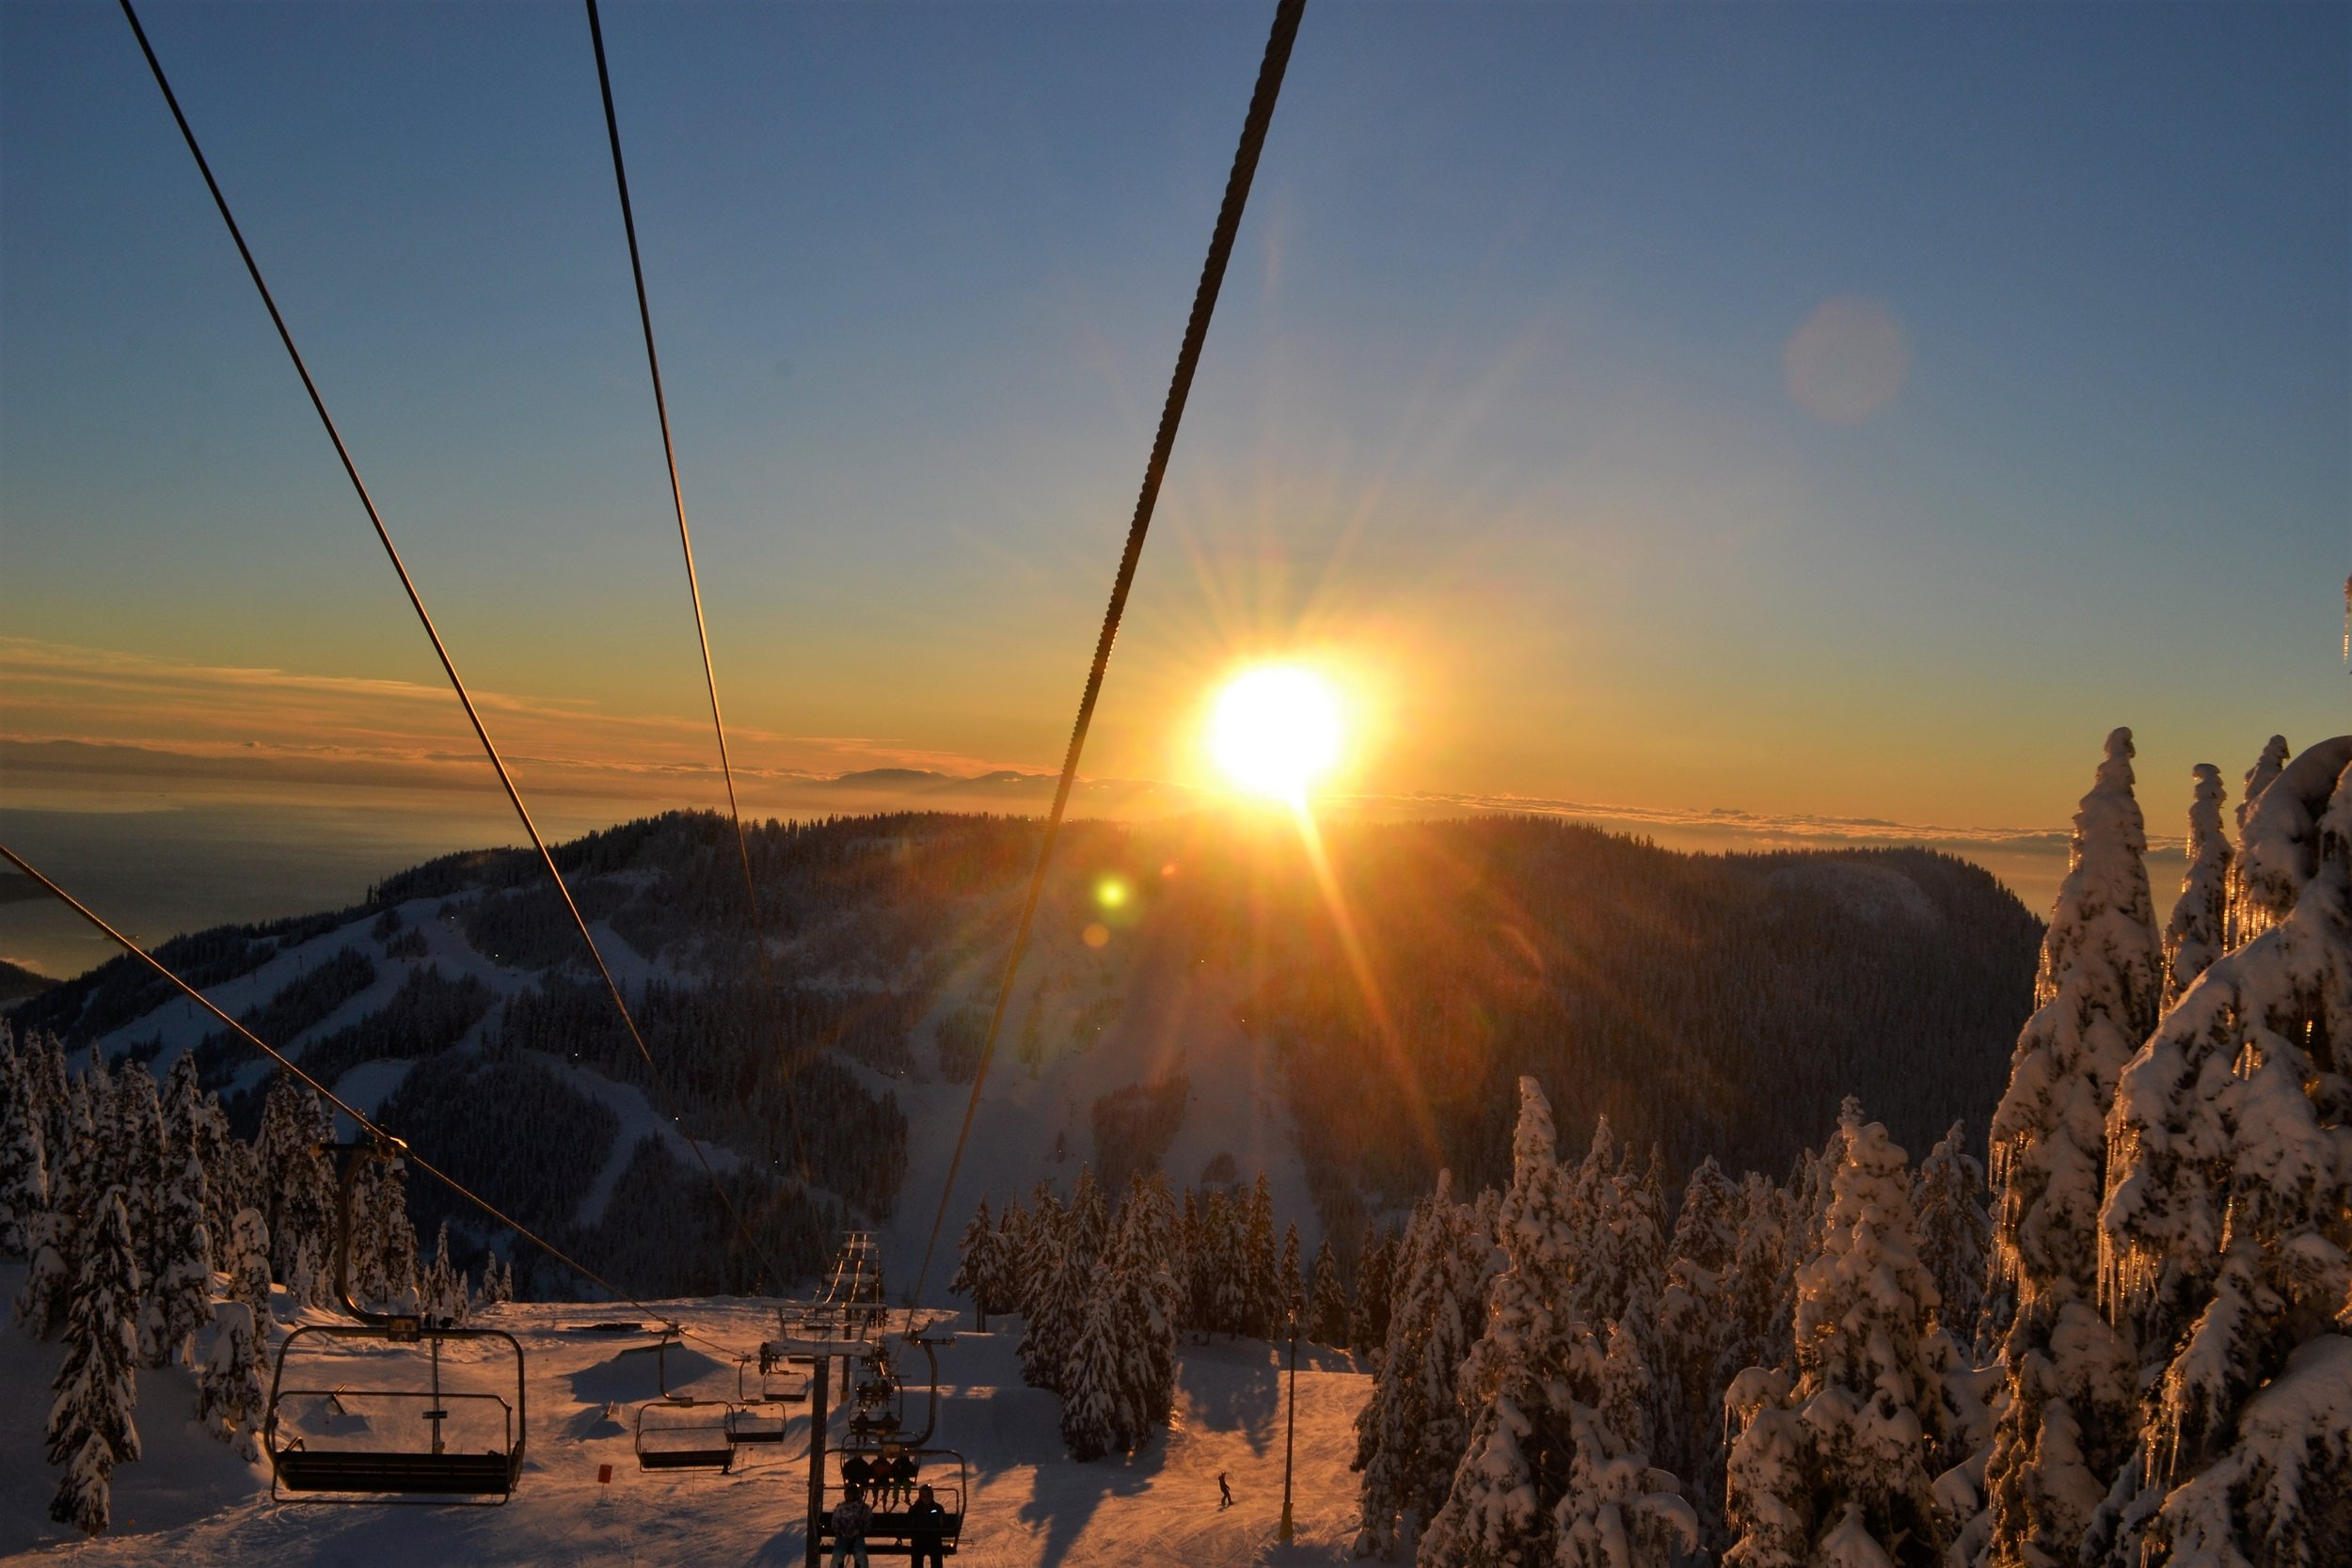 A great view of the sunset from the chairlift at the local mountains in Vancouver